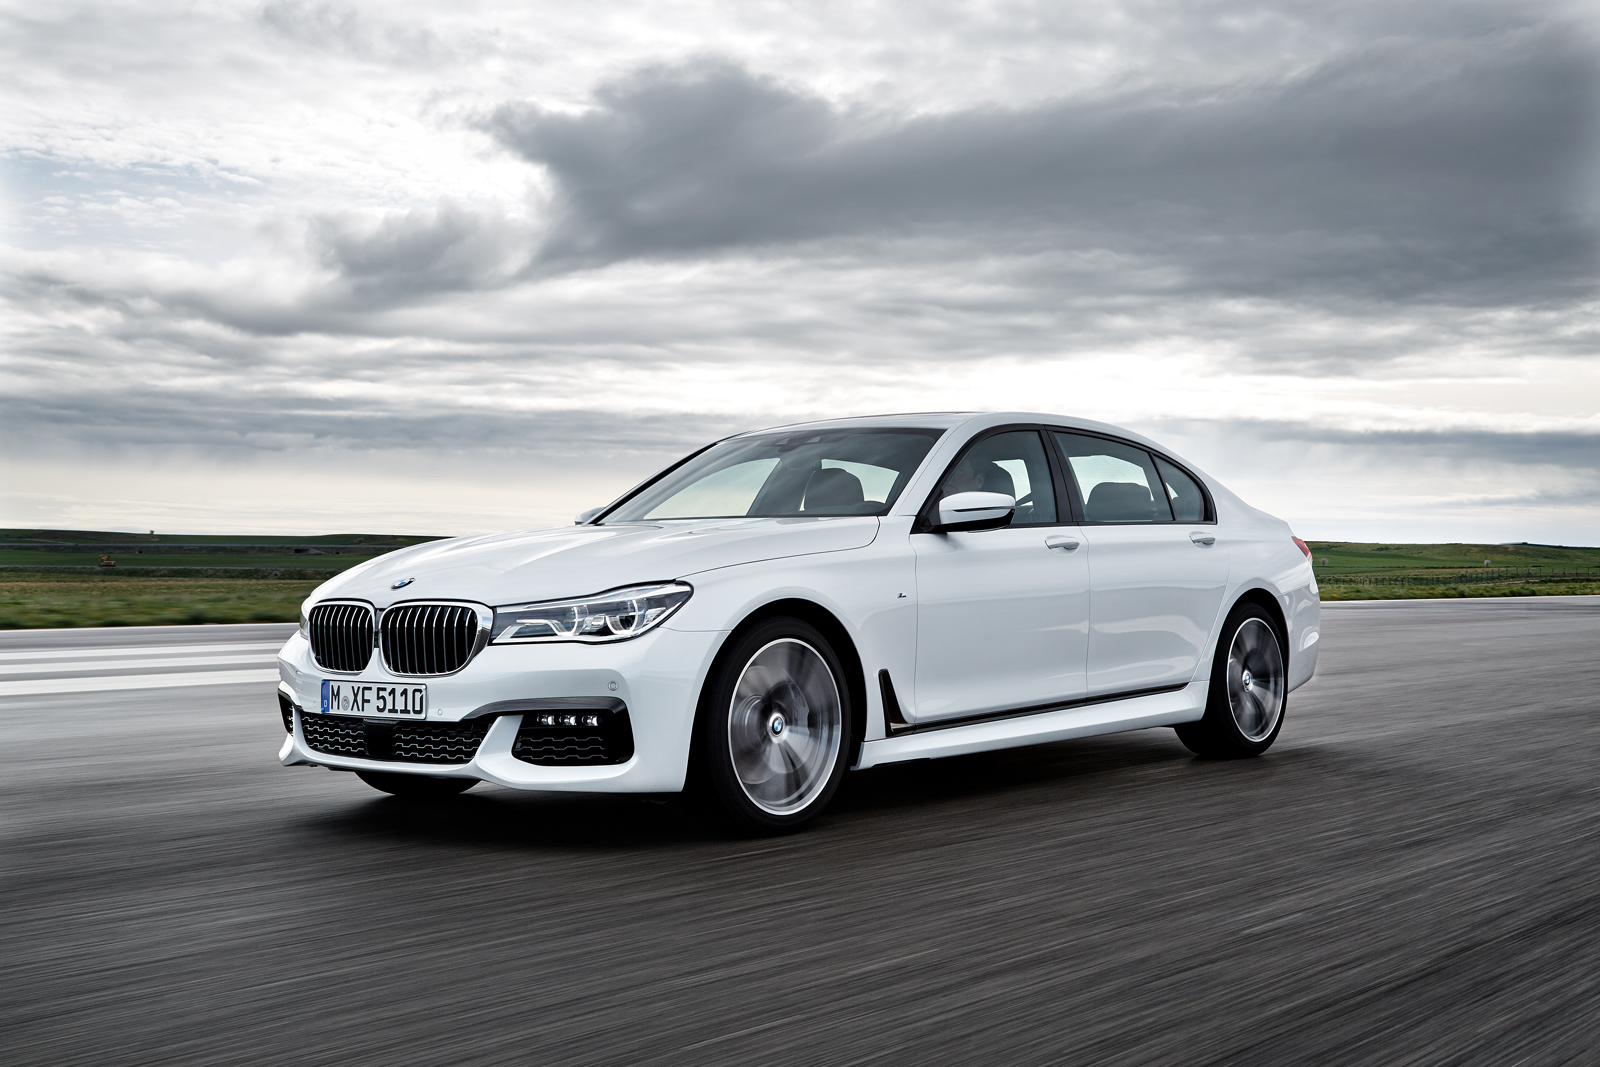 BMW Prepping QuadTurbo Diesel with Over 400 HP